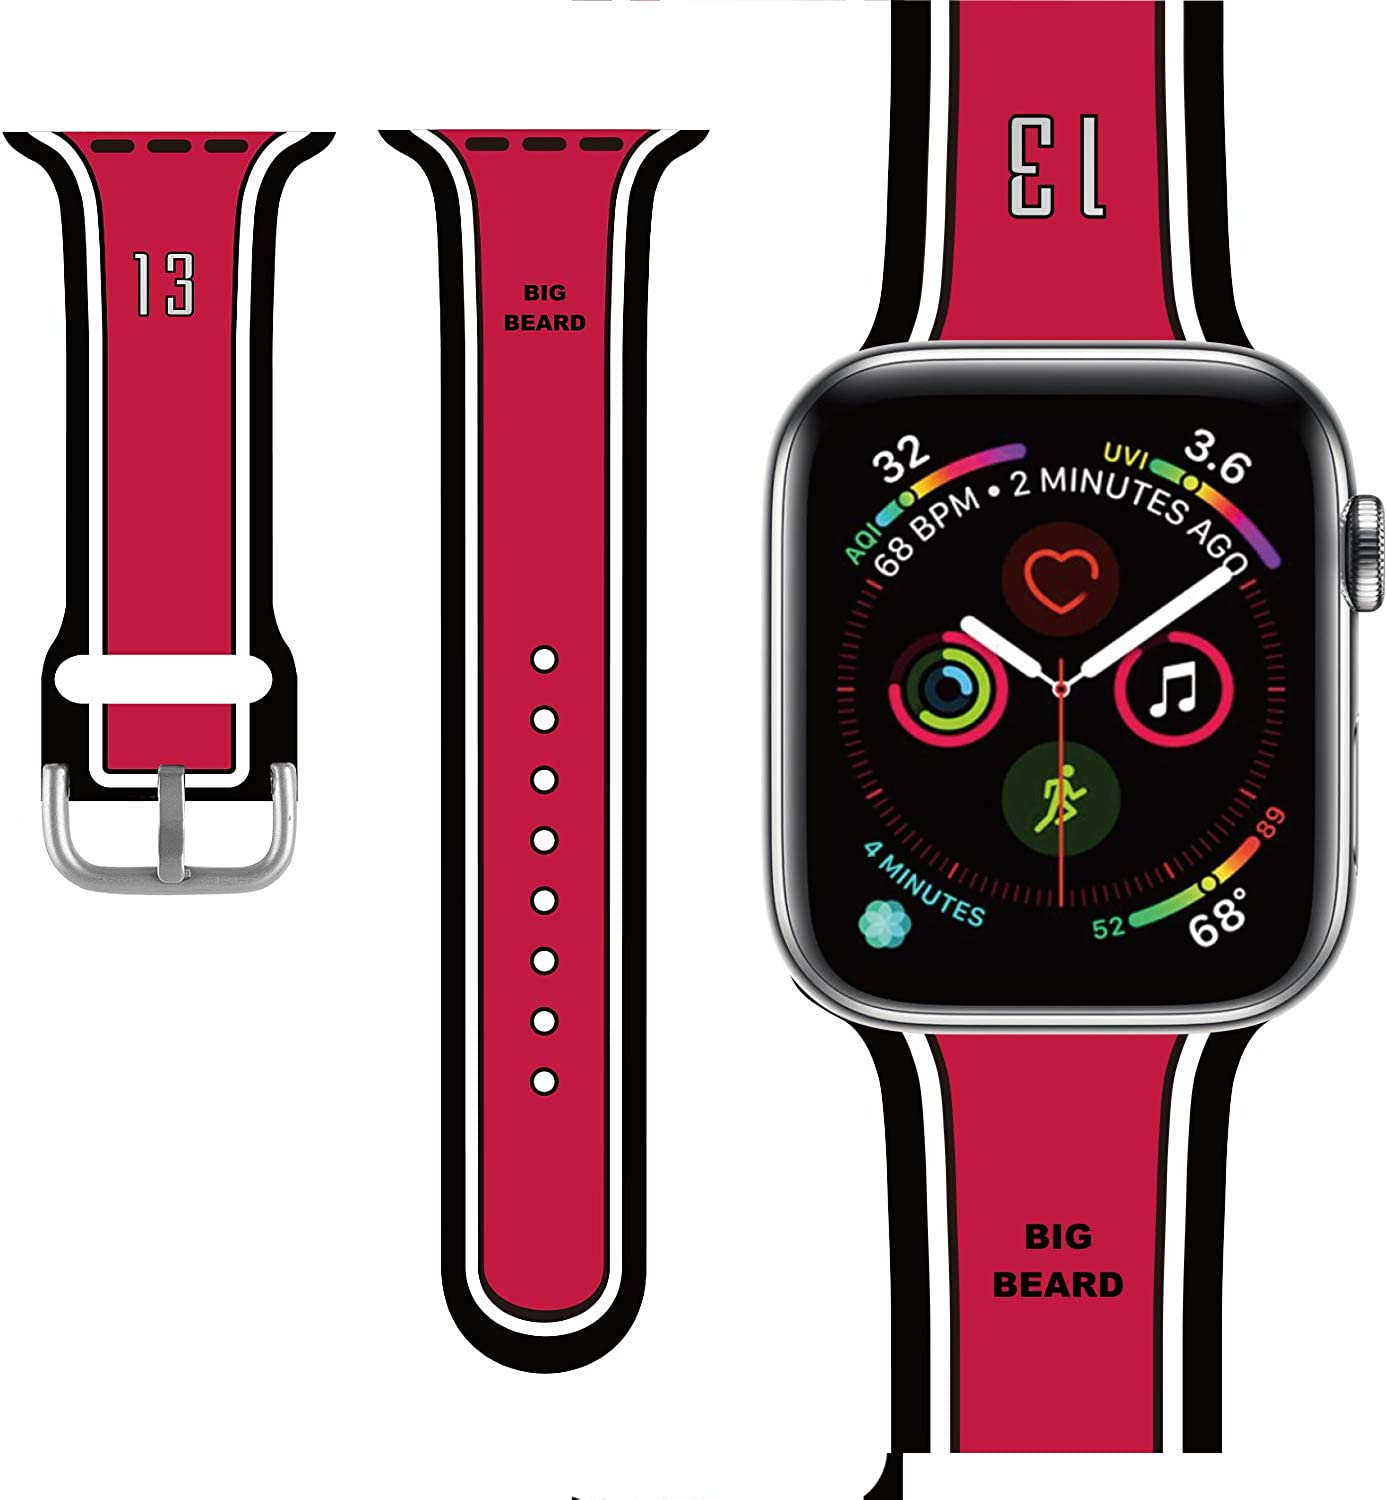 Basketball design Compatible with Apple Watch Band 38mm/40mm/42mm/44mm,Classic Cute Fashion for Kids Men Boys Character Silicone Band Compatible iWatch Series 5,Series 4,Series 3,Series 2,Series 1